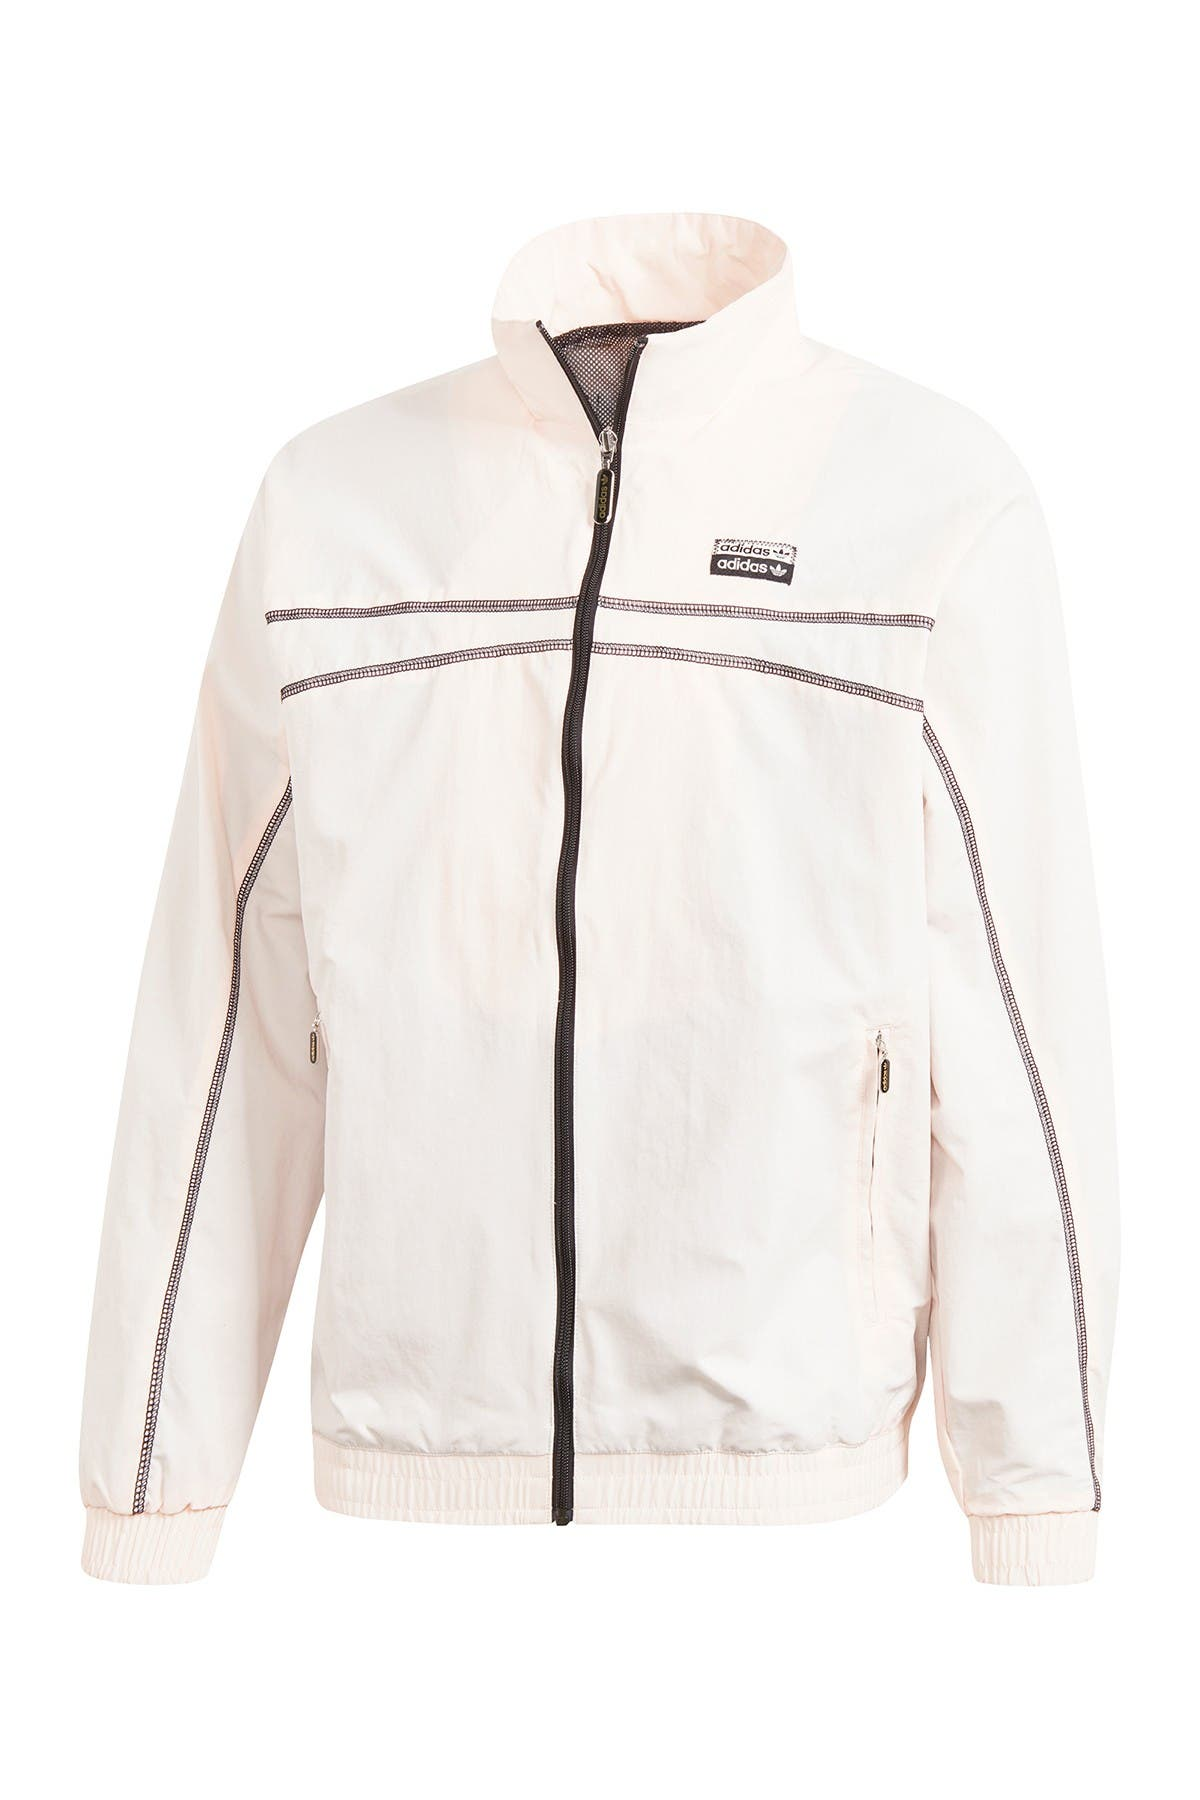 Image of adidas Track Jacket